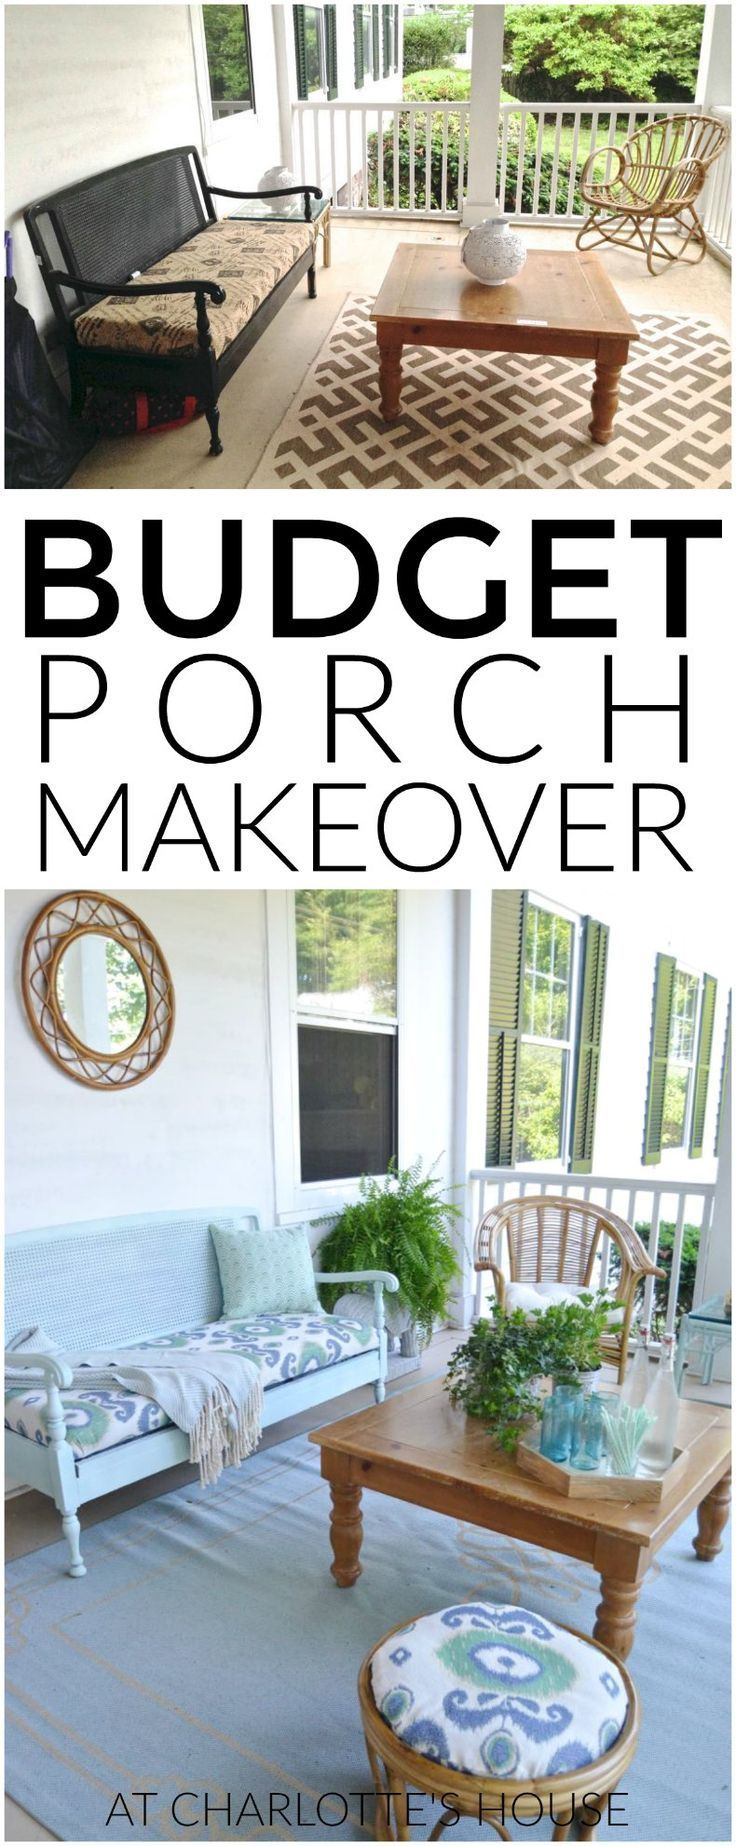 This Porch Got An Entire Makeover Thanks To Some Elbow Grease And Some Simple Thrift Store Finds Porch Makeover Decor Diy Outdoor Decor